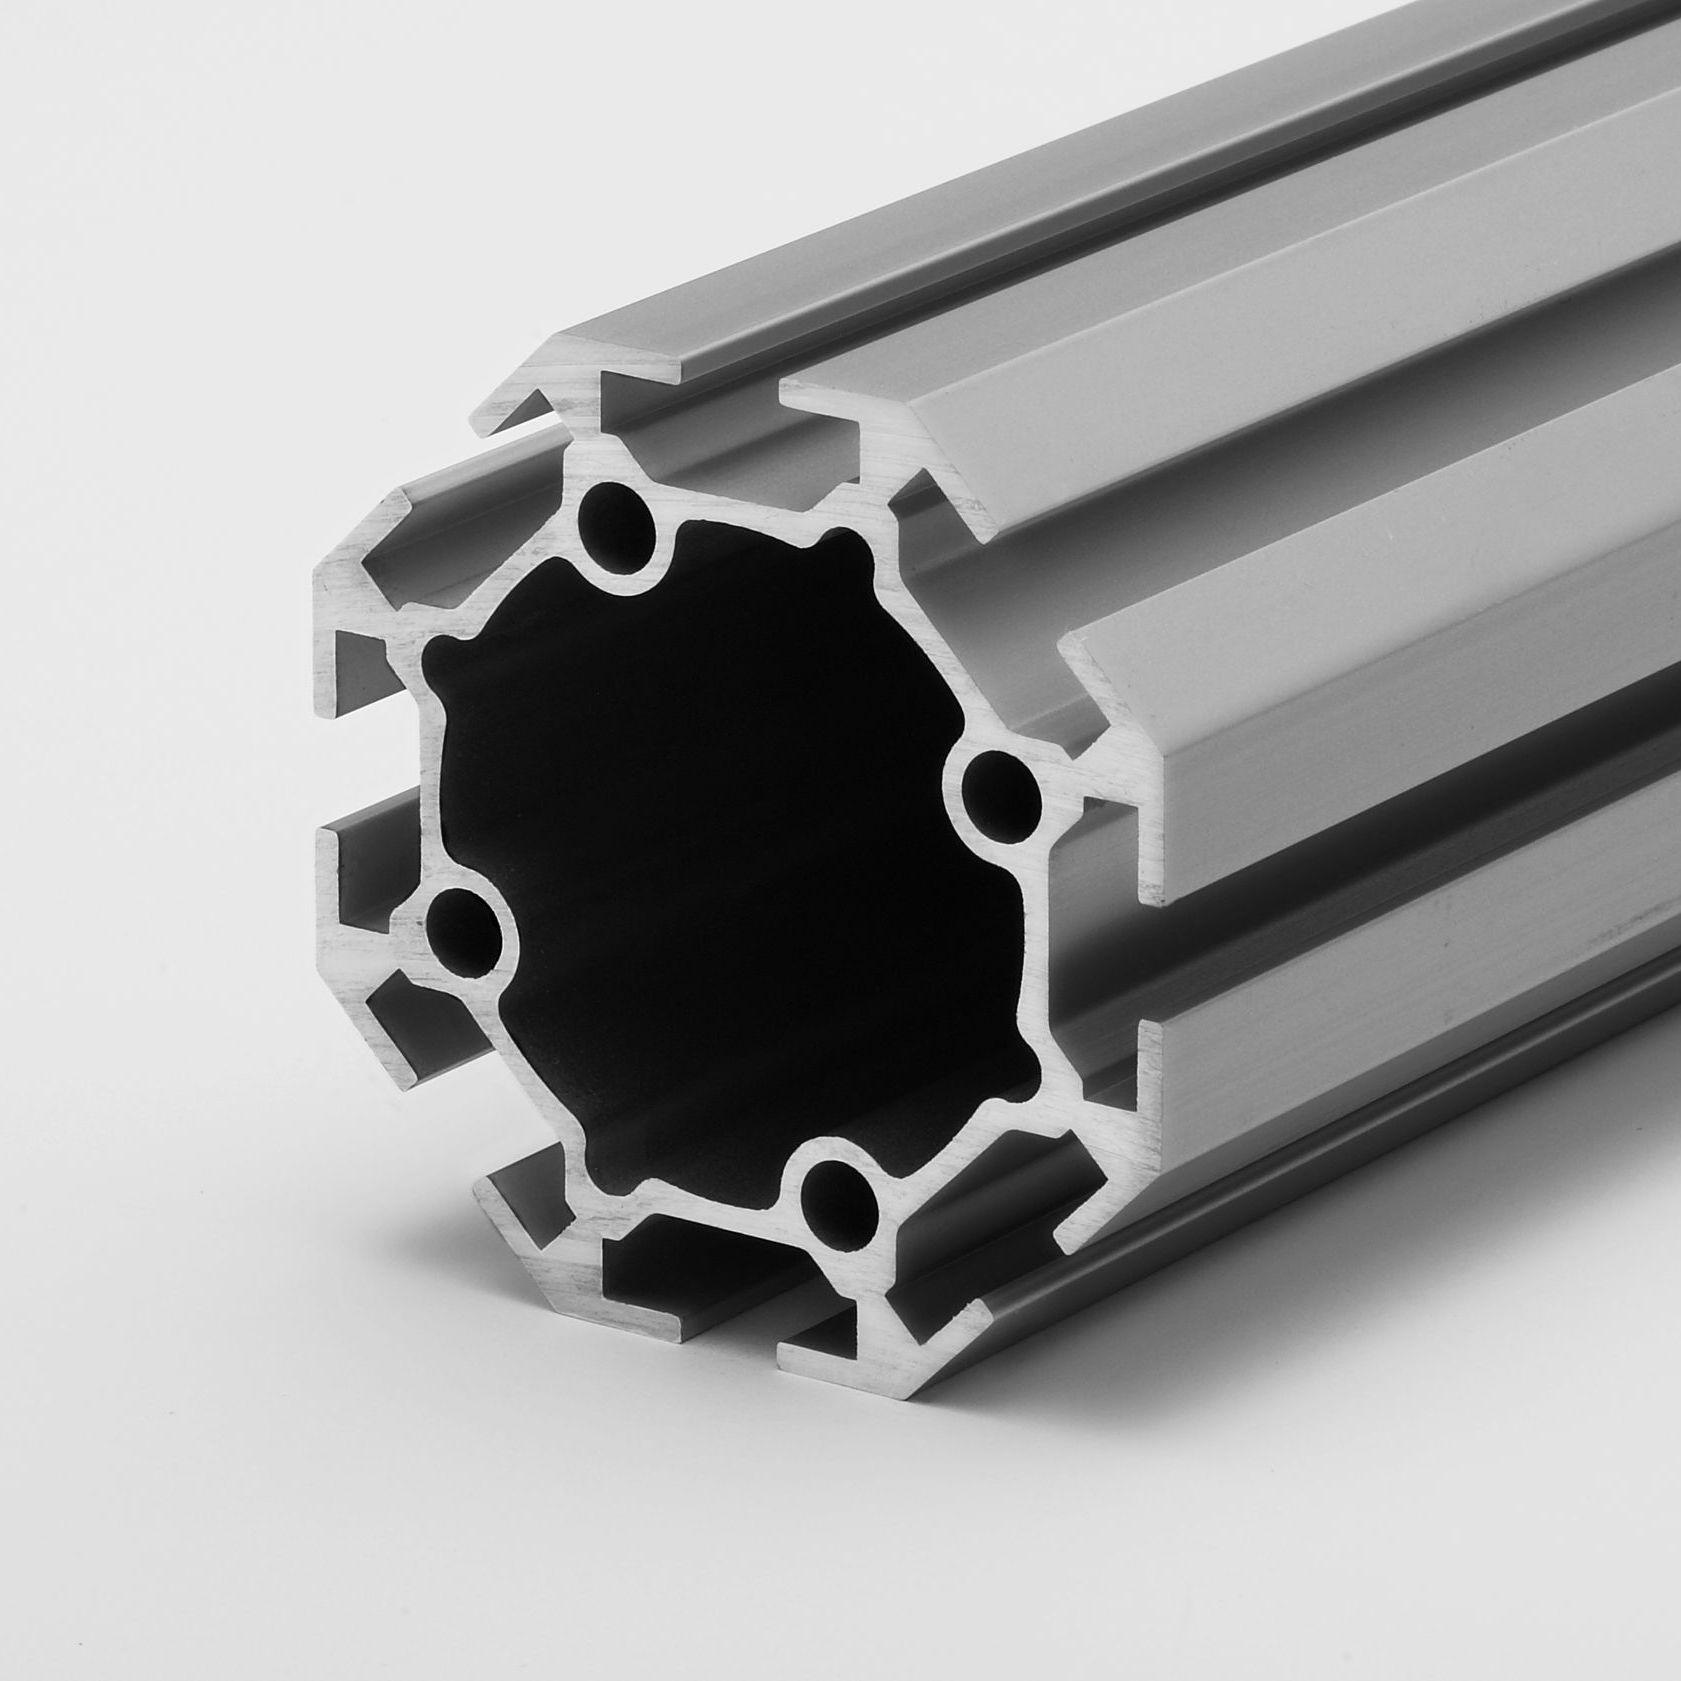 Special extrusions